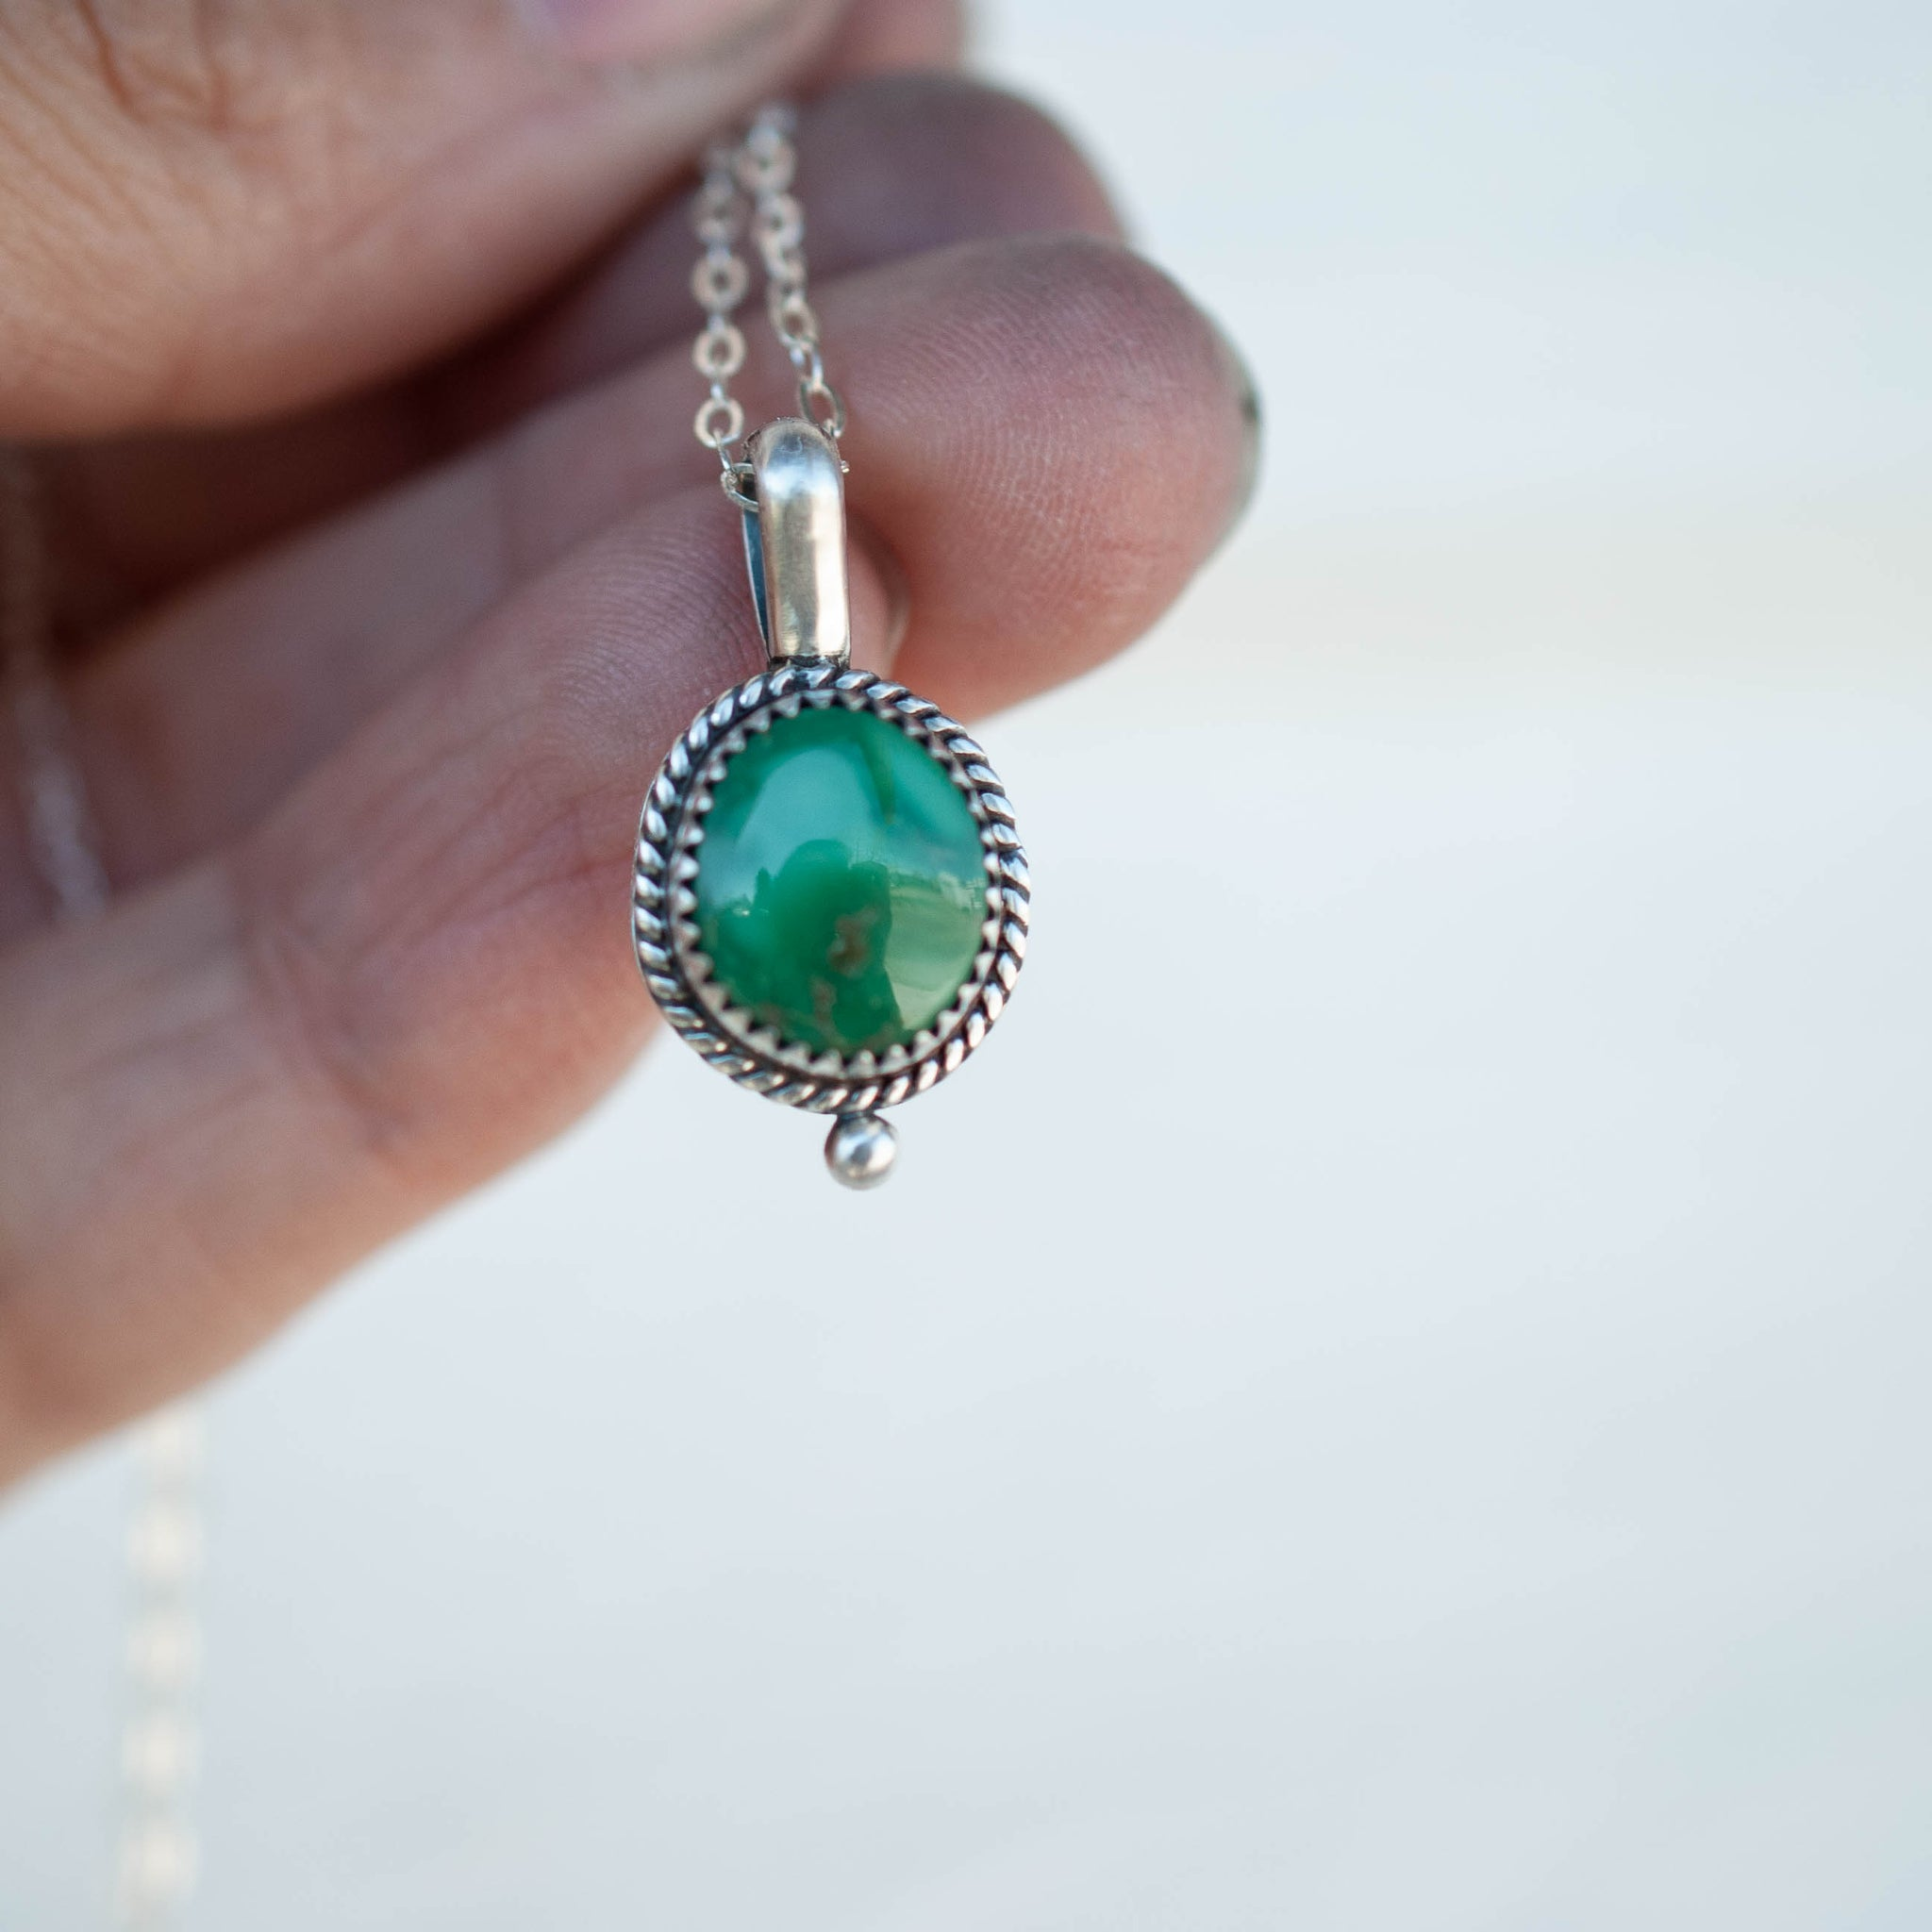 Emerald Valley Turquoise Charm 1